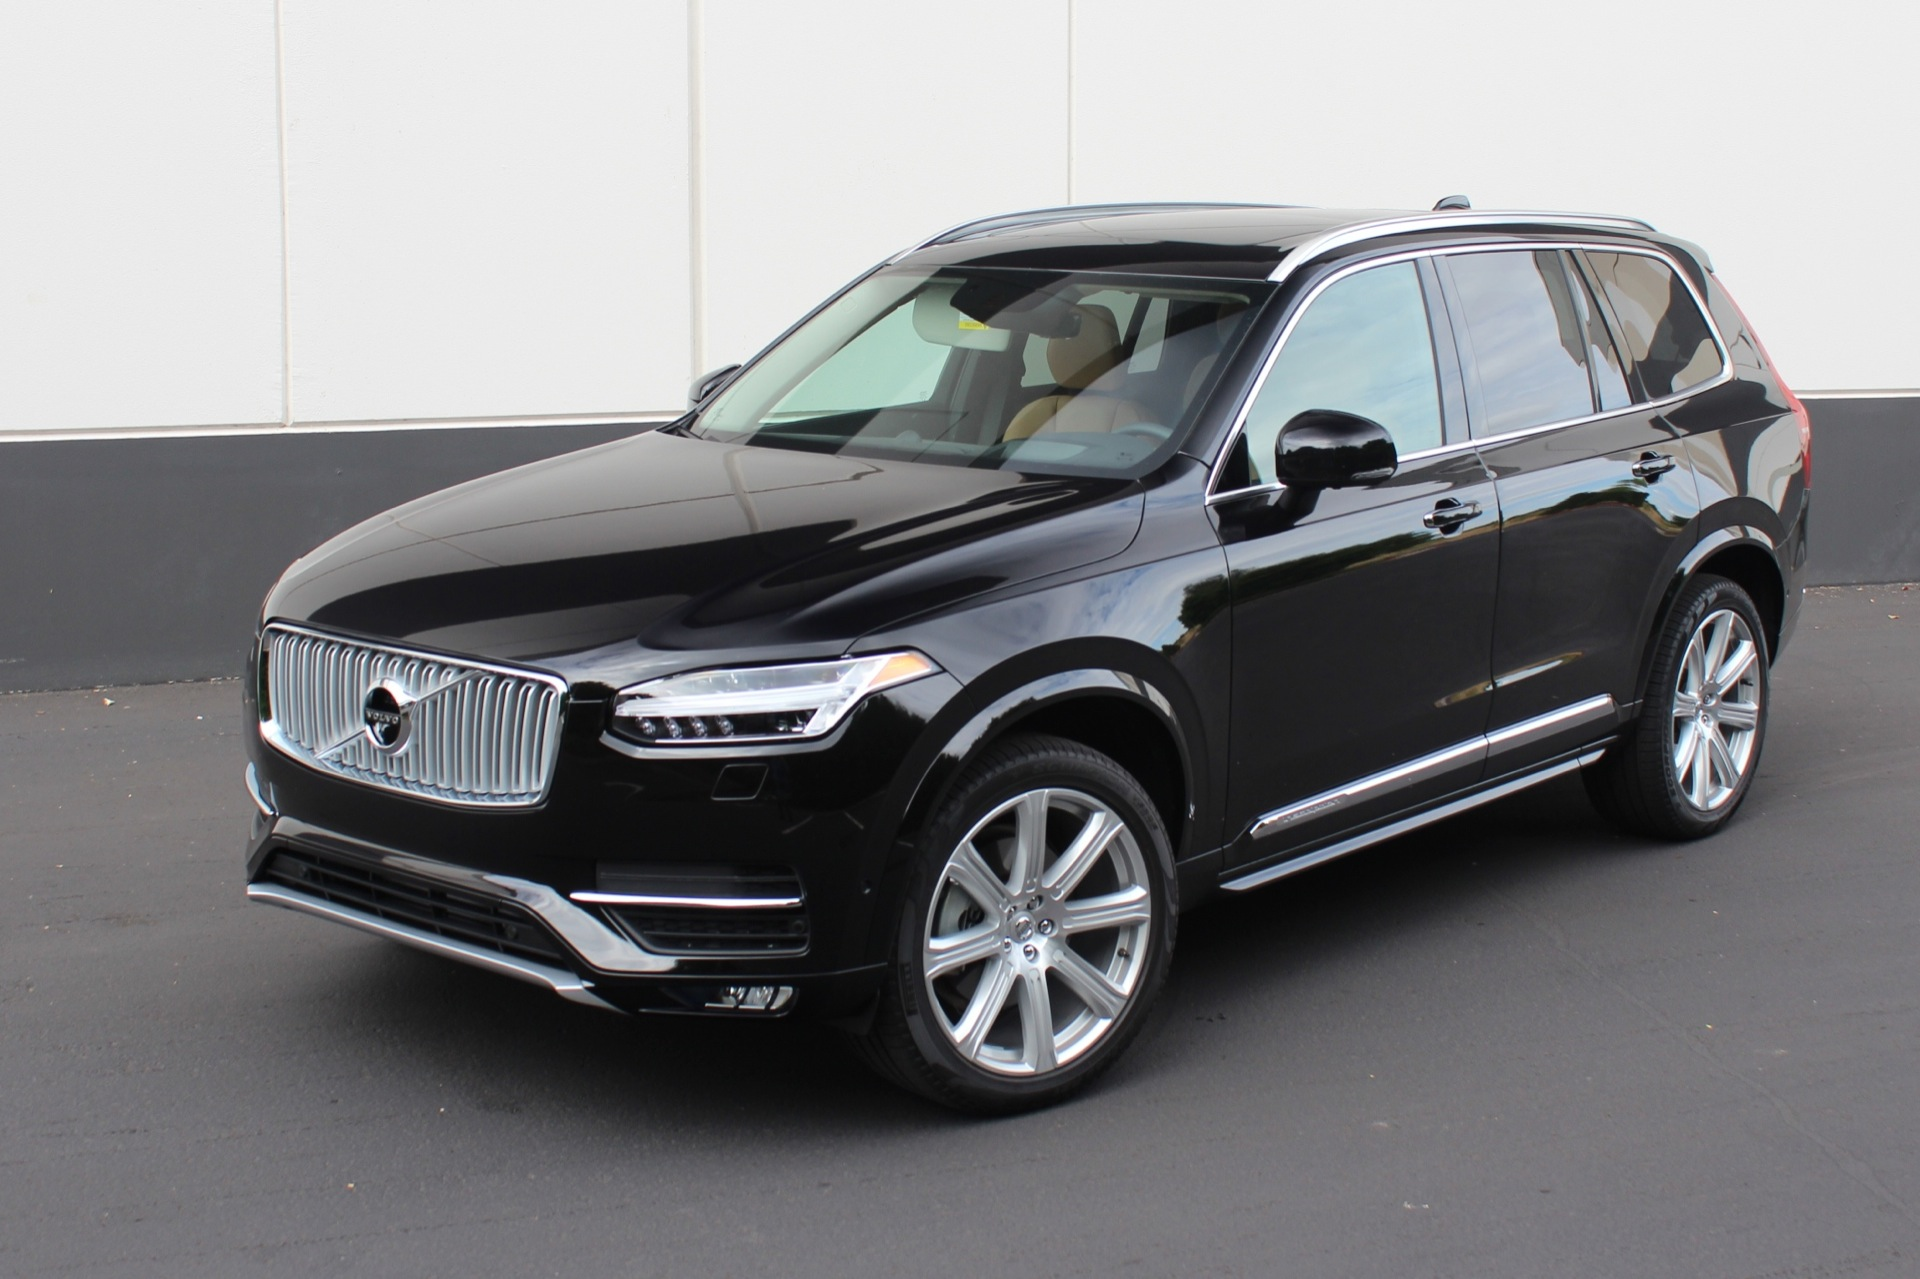 2016 volvo xc90 features review the car connection. Black Bedroom Furniture Sets. Home Design Ideas